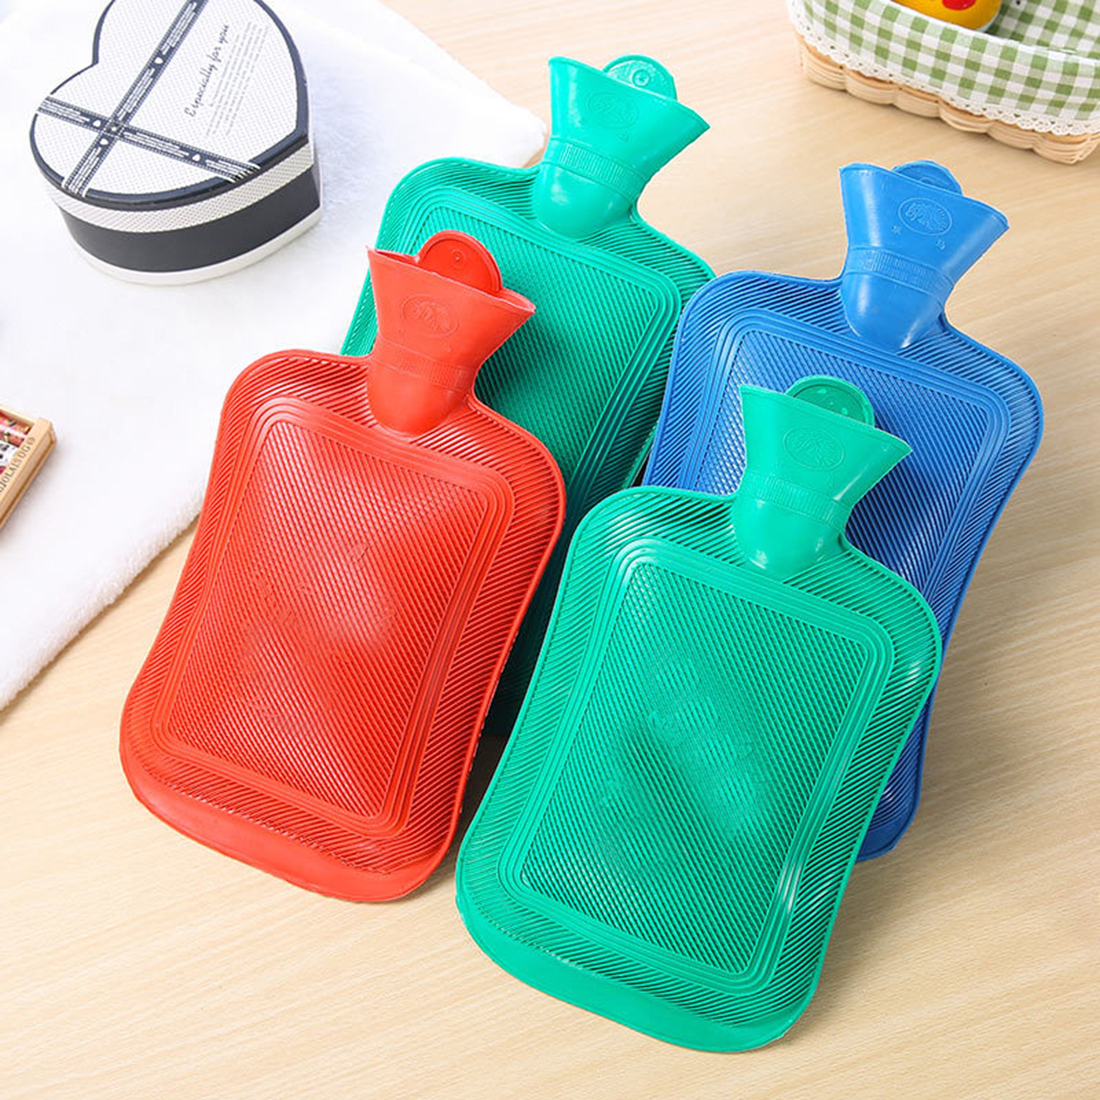 Hot Water Bottle Thick High Density Rubber Hot Water Bag Hand Warming Water Bottles Winter Hot Water Bags Bottle random color ...